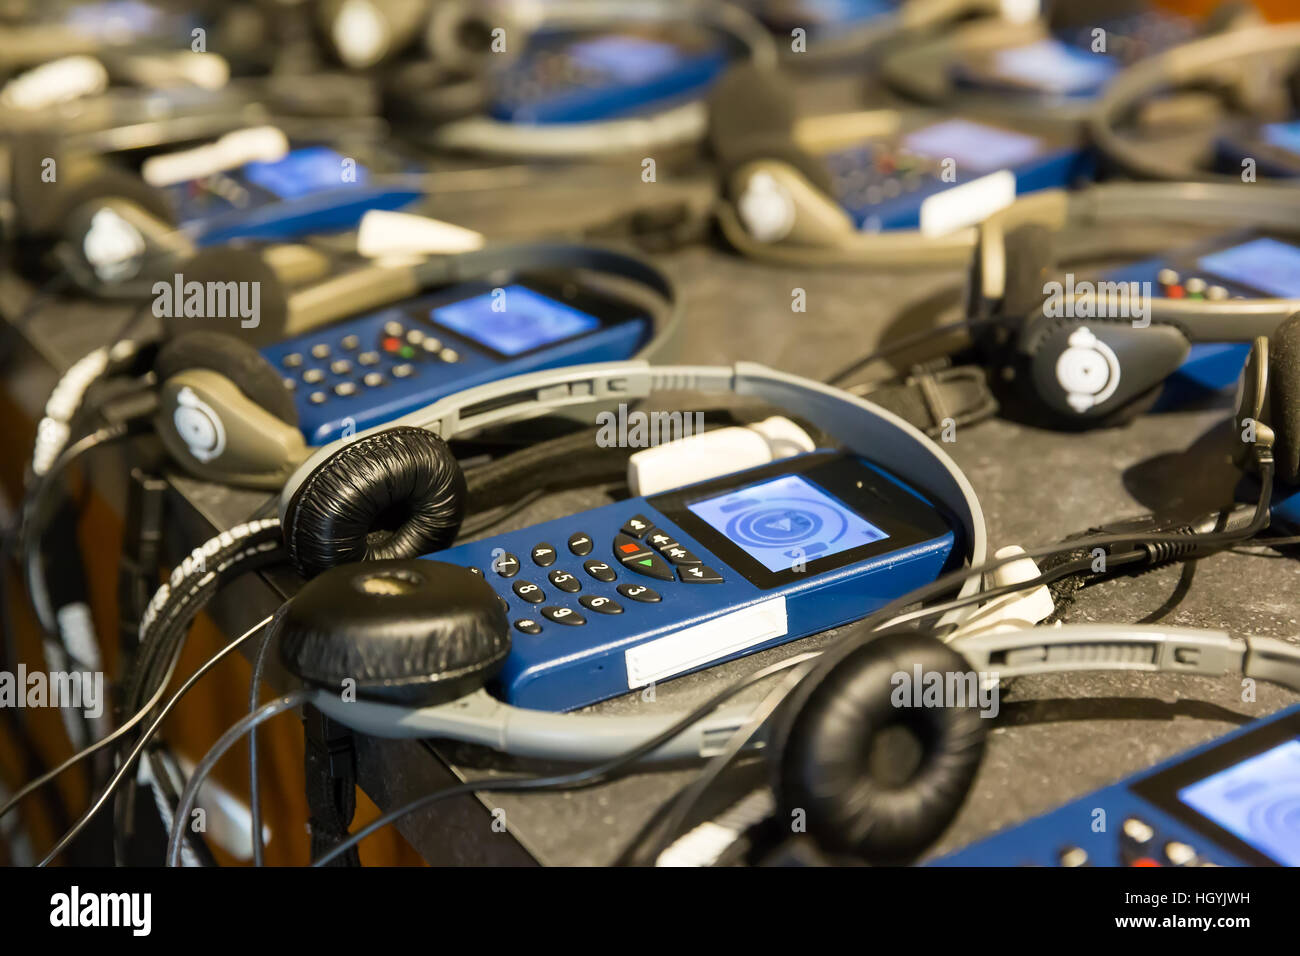 Audio guide with headphones. - Stock Image